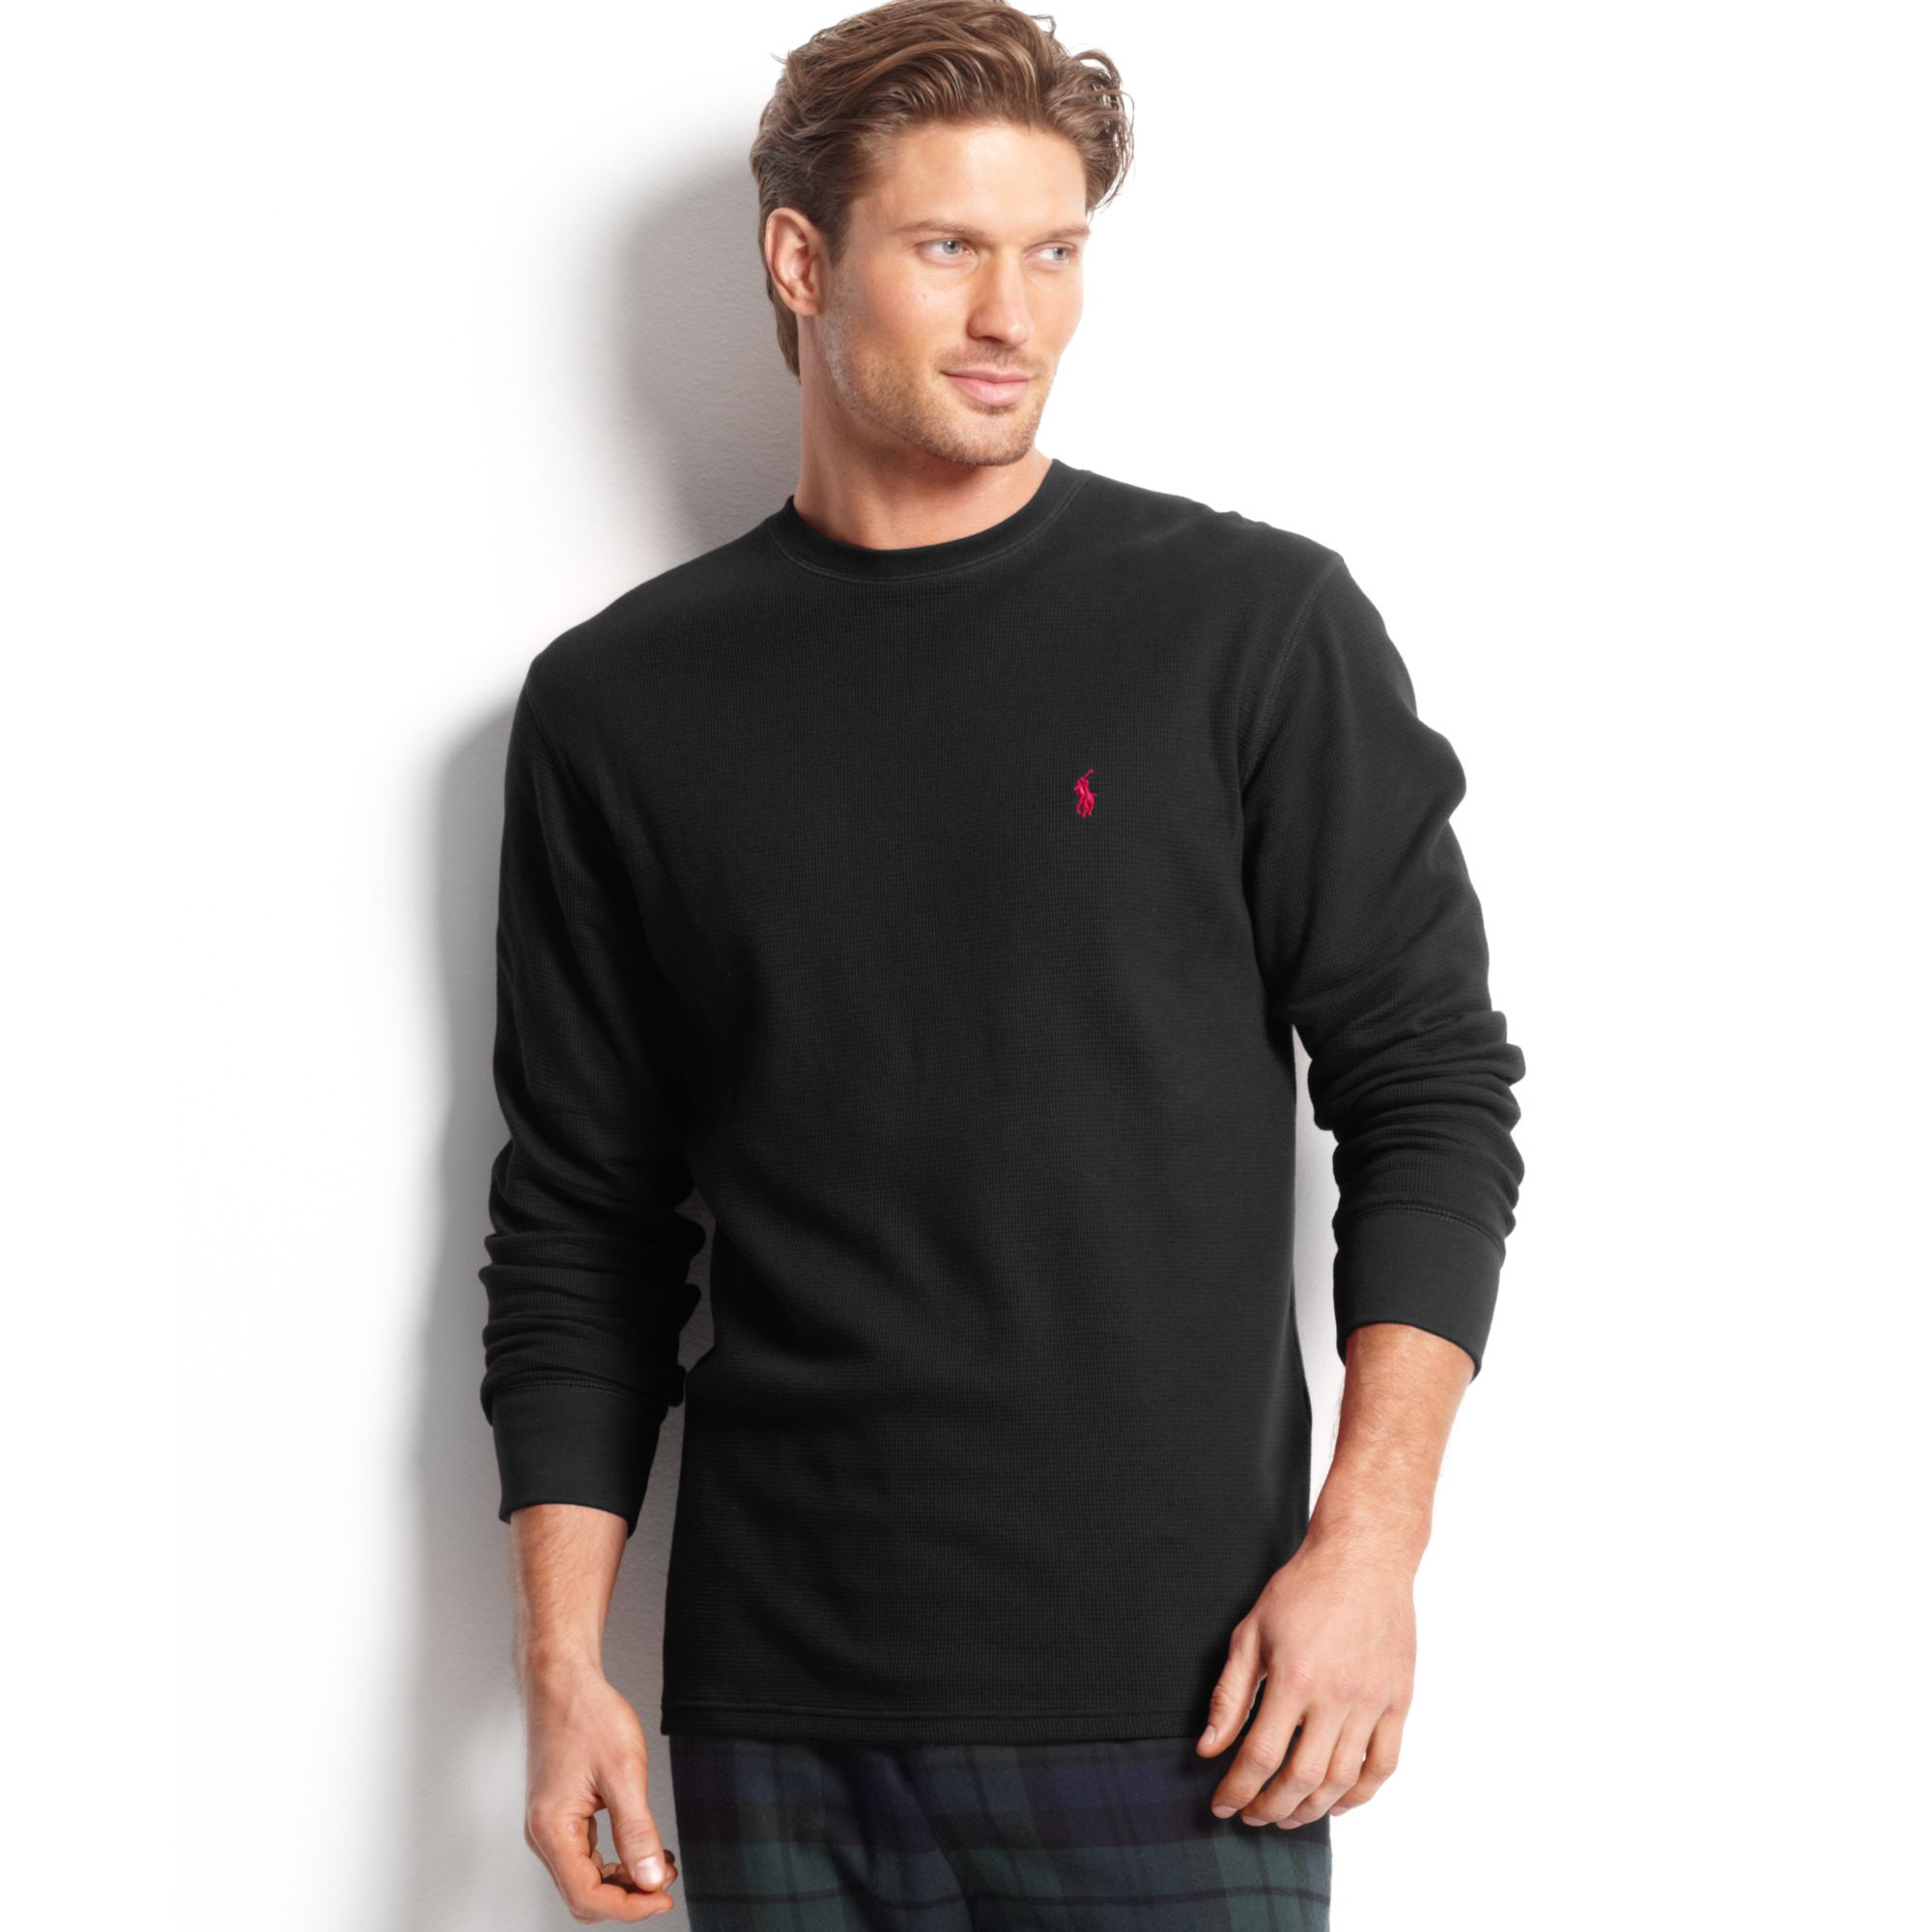 Polo ralph lauren big and tall long sleeve crew neck for Big and tall long sleeve shirts